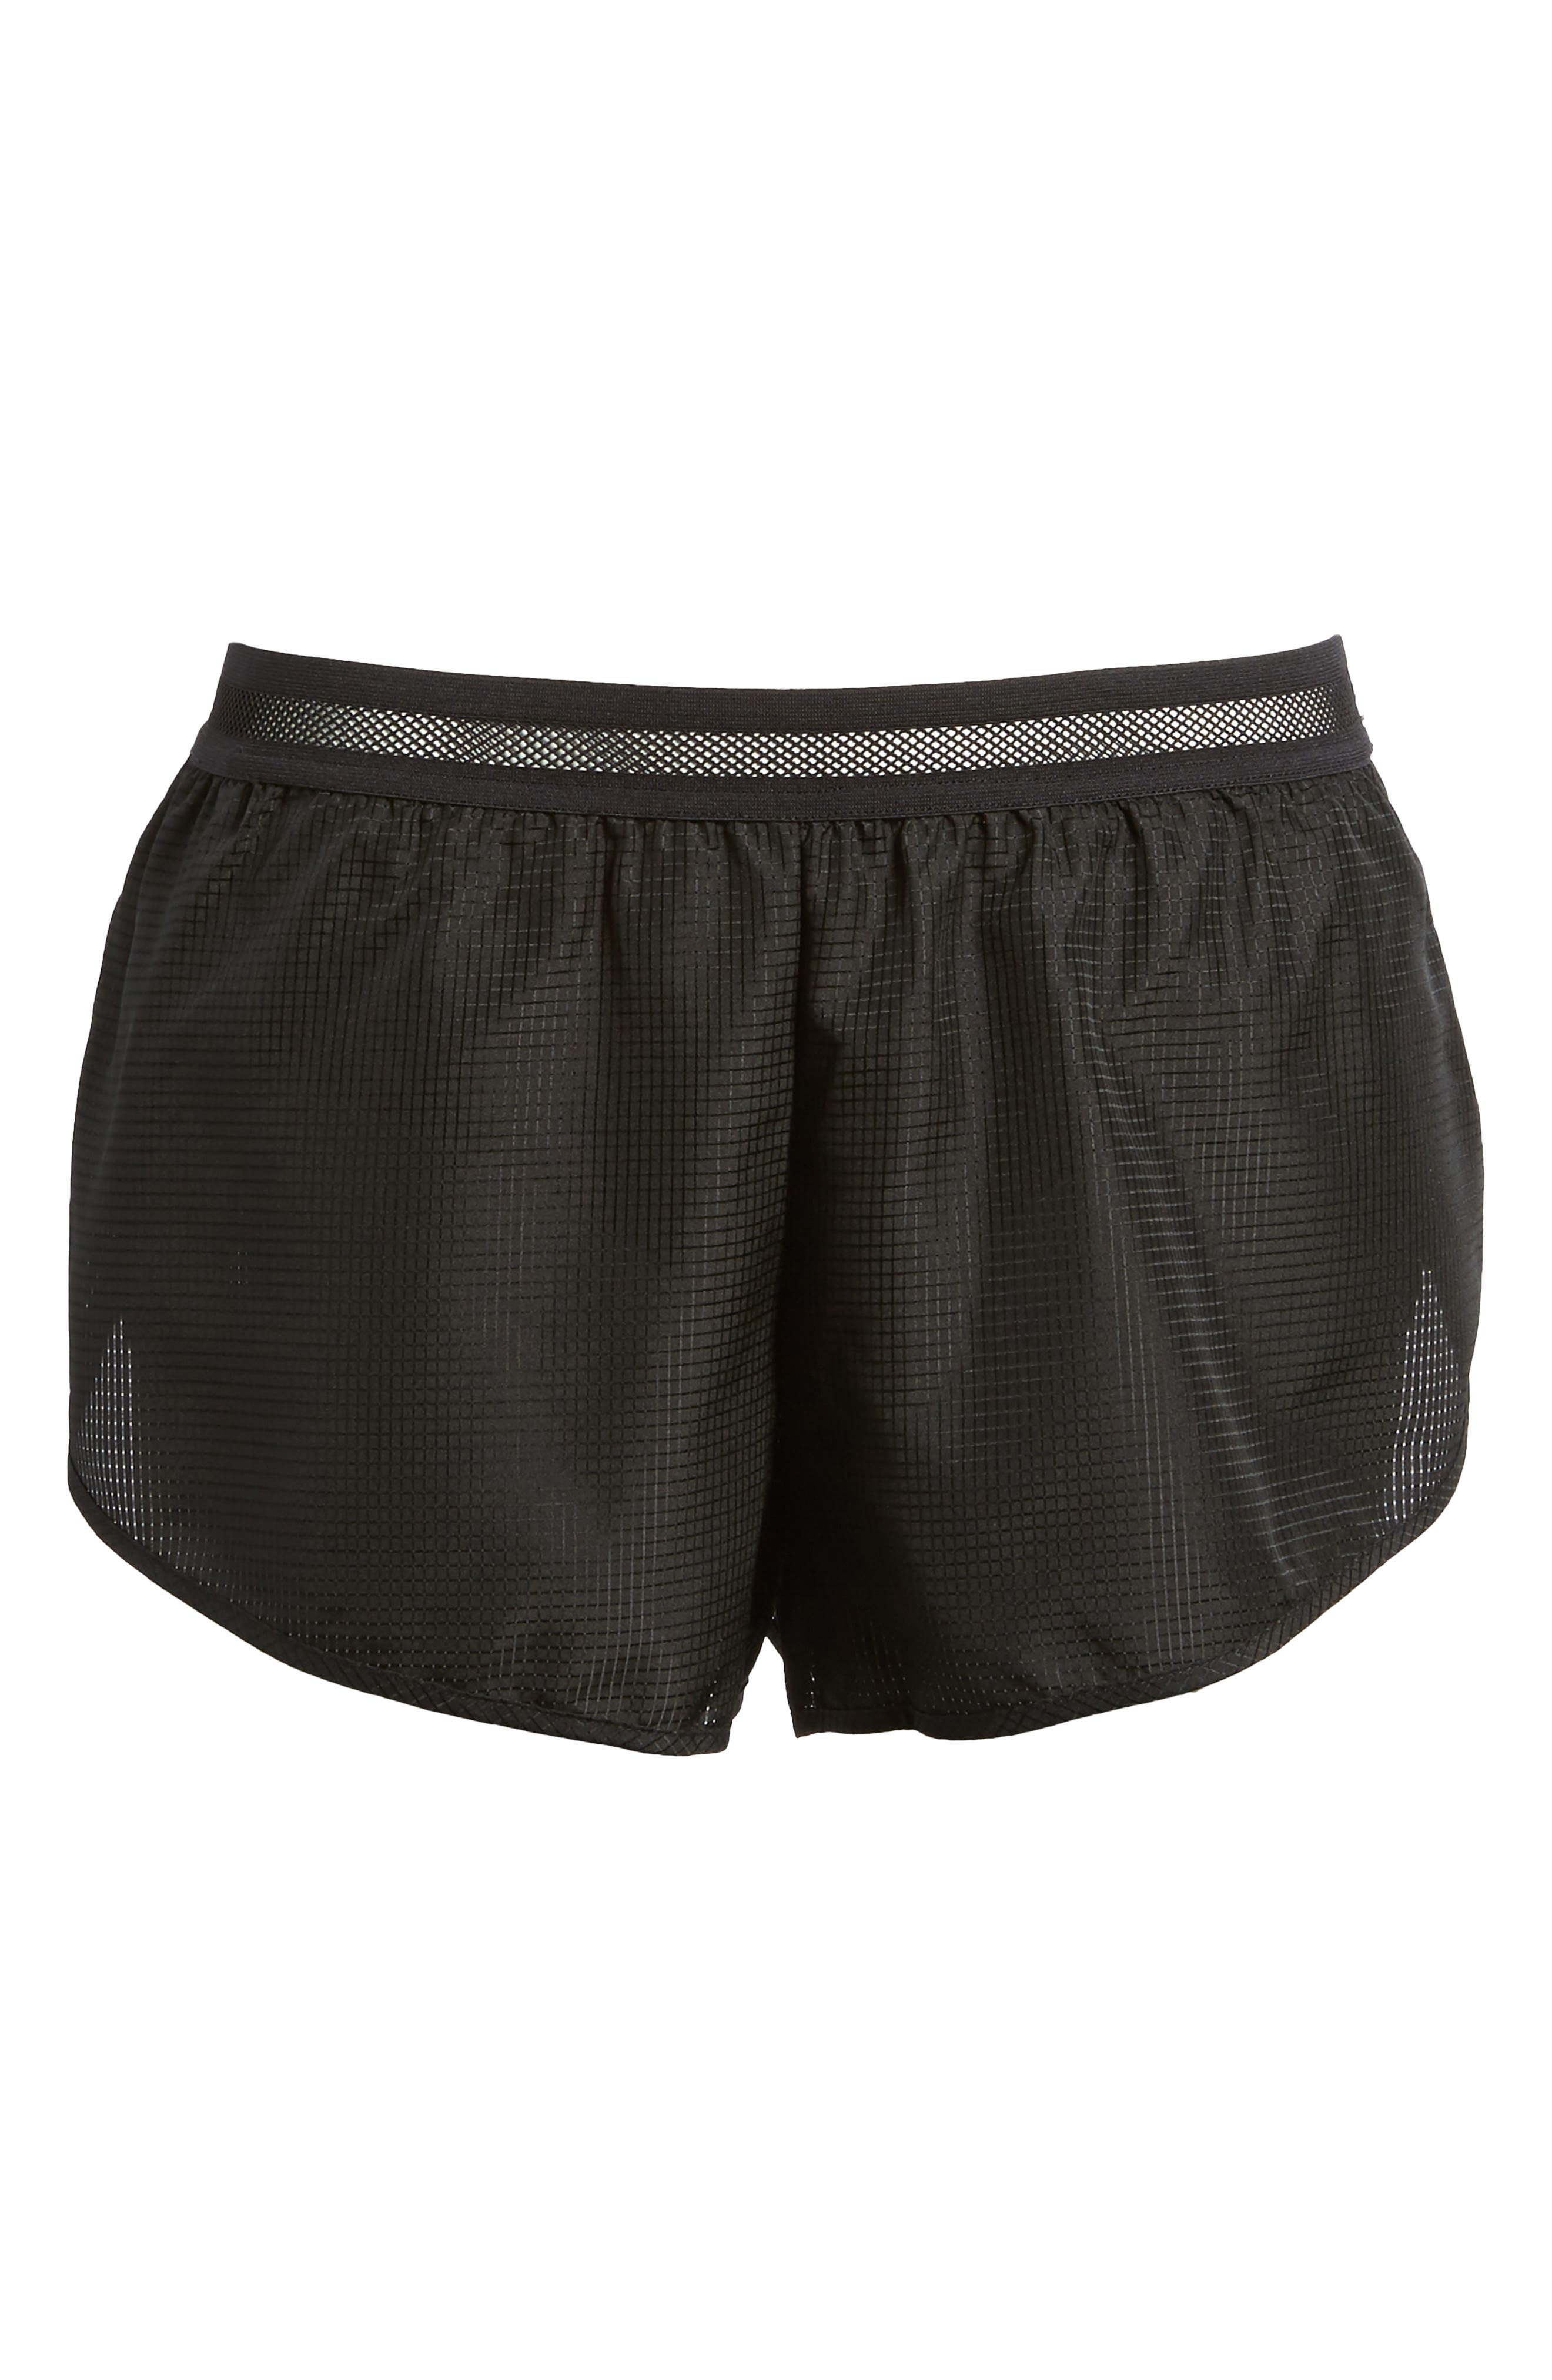 Logo Perforated Runner Shorts,                             Alternate thumbnail 7, color,                             001